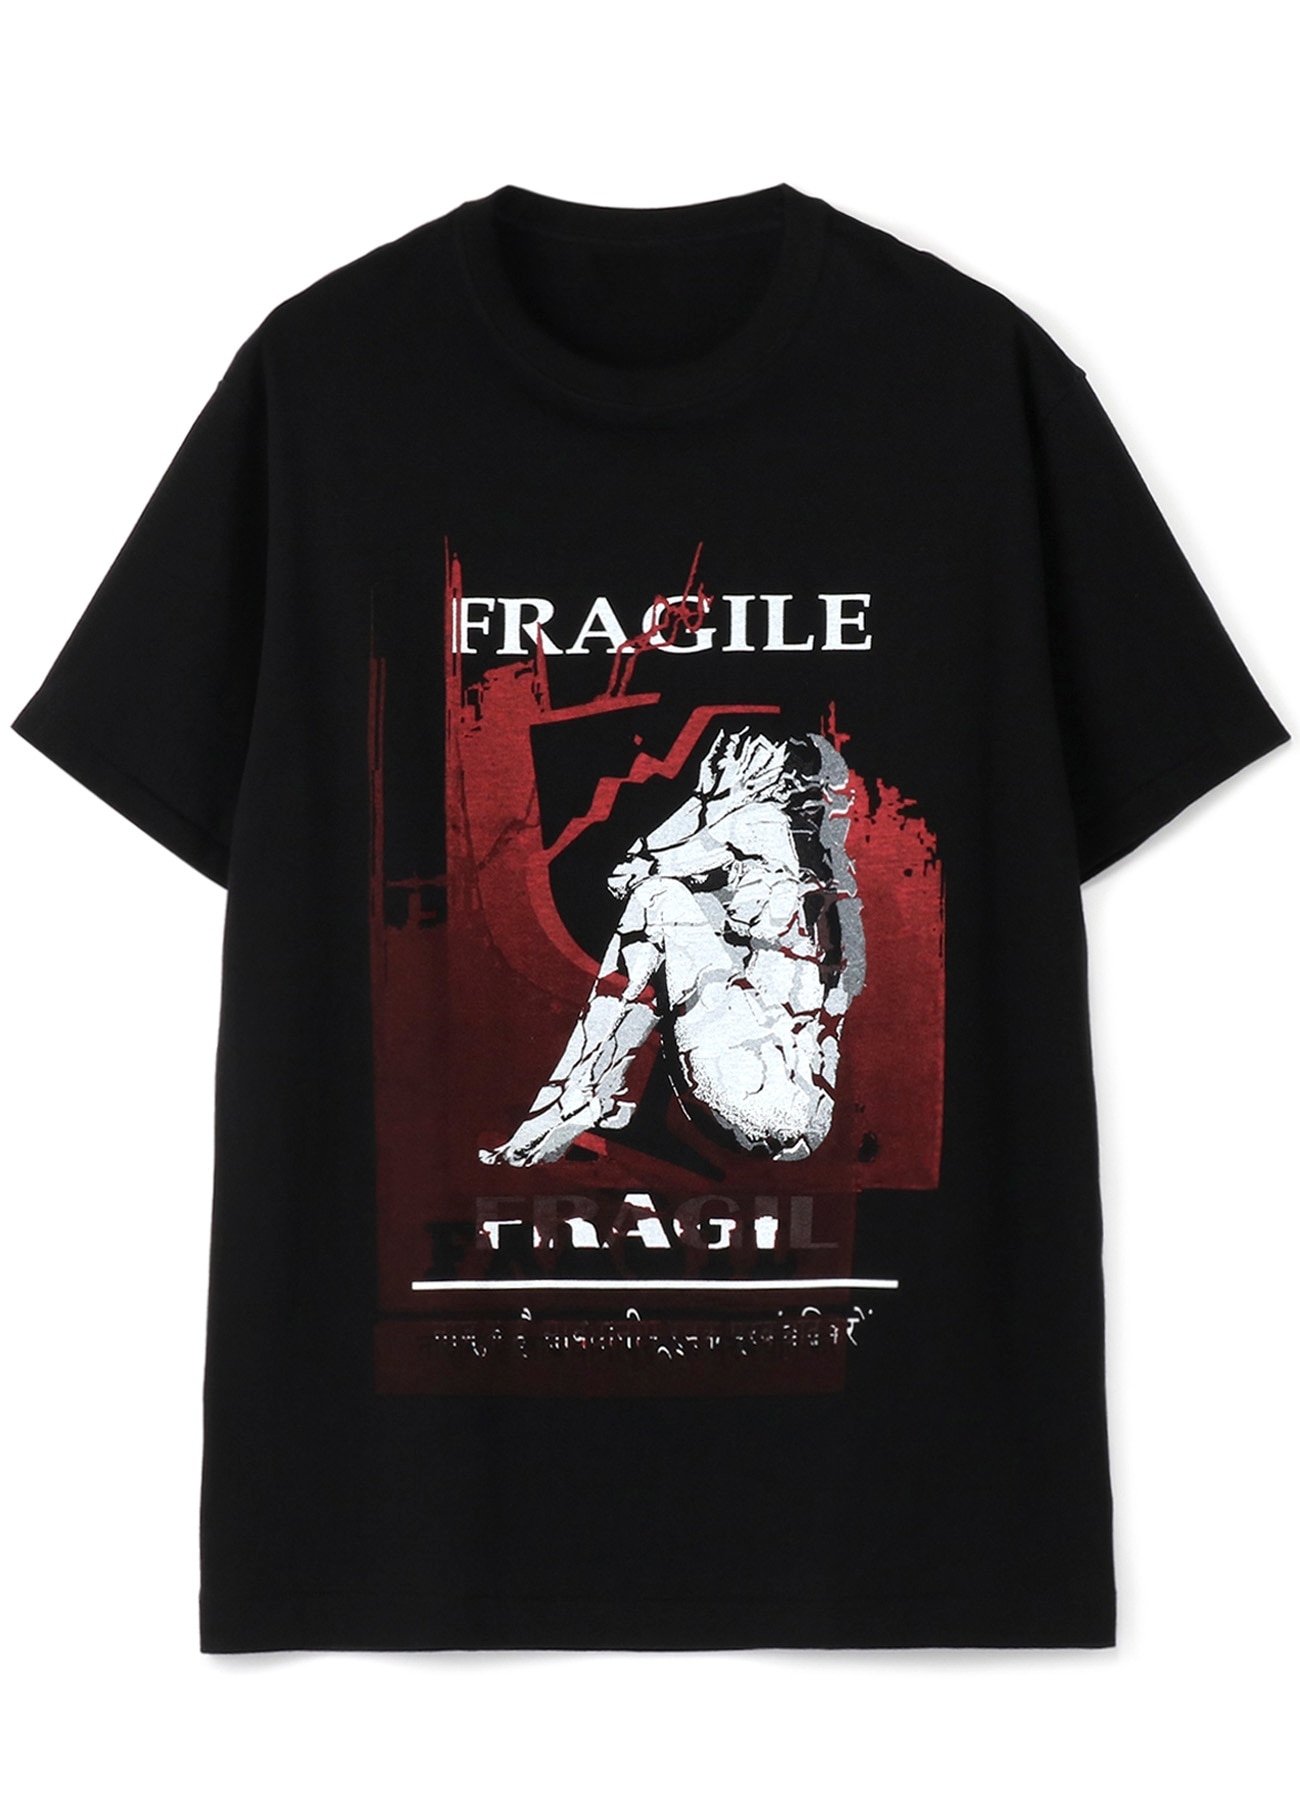 20/CottonJersey Fragile T-Shirt